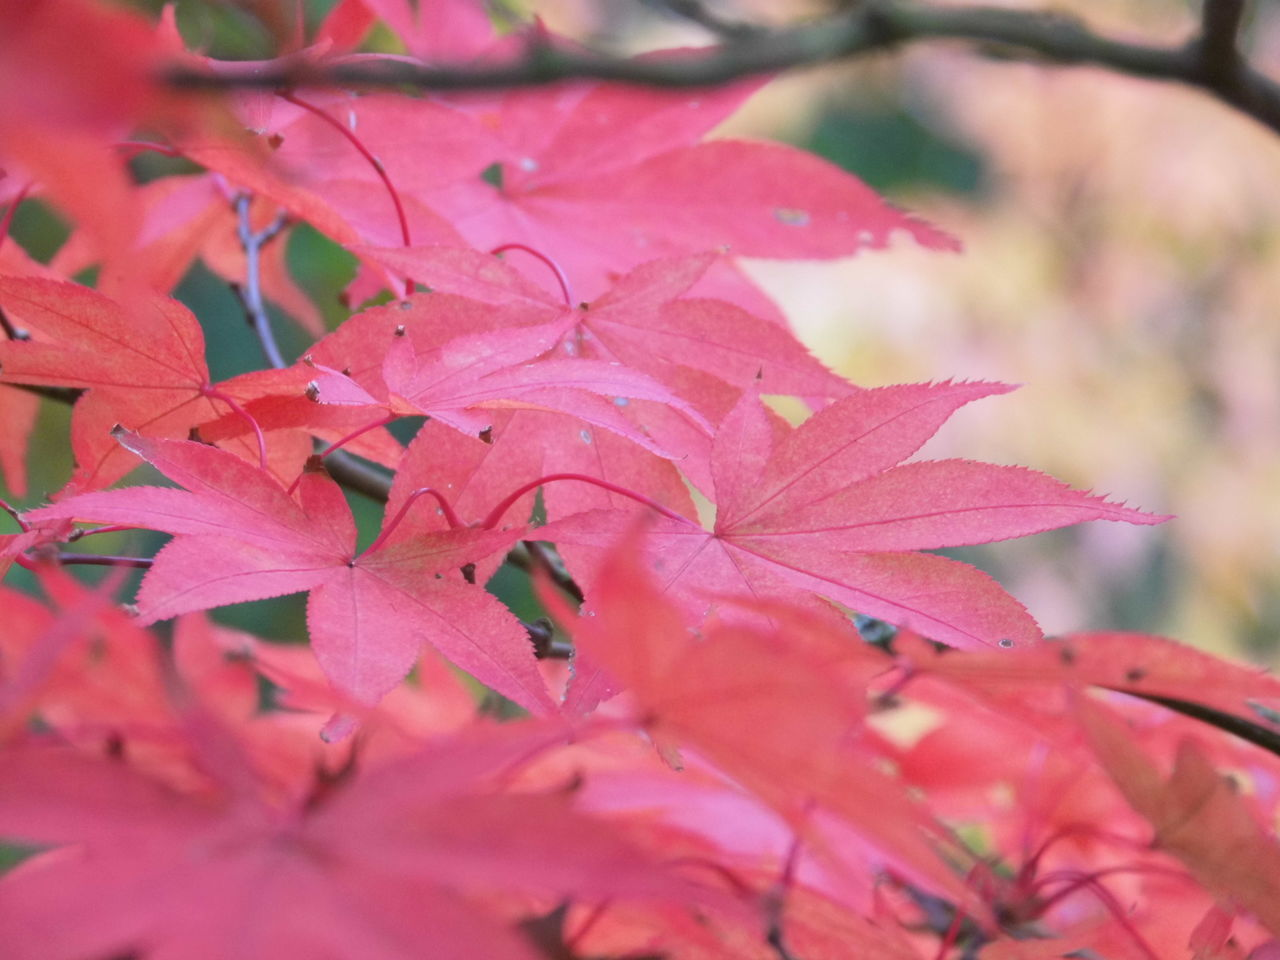 leaf, nature, beauty in nature, growth, outdoors, change, no people, day, close-up, fragility, maple leaf, autumn, plant, maple